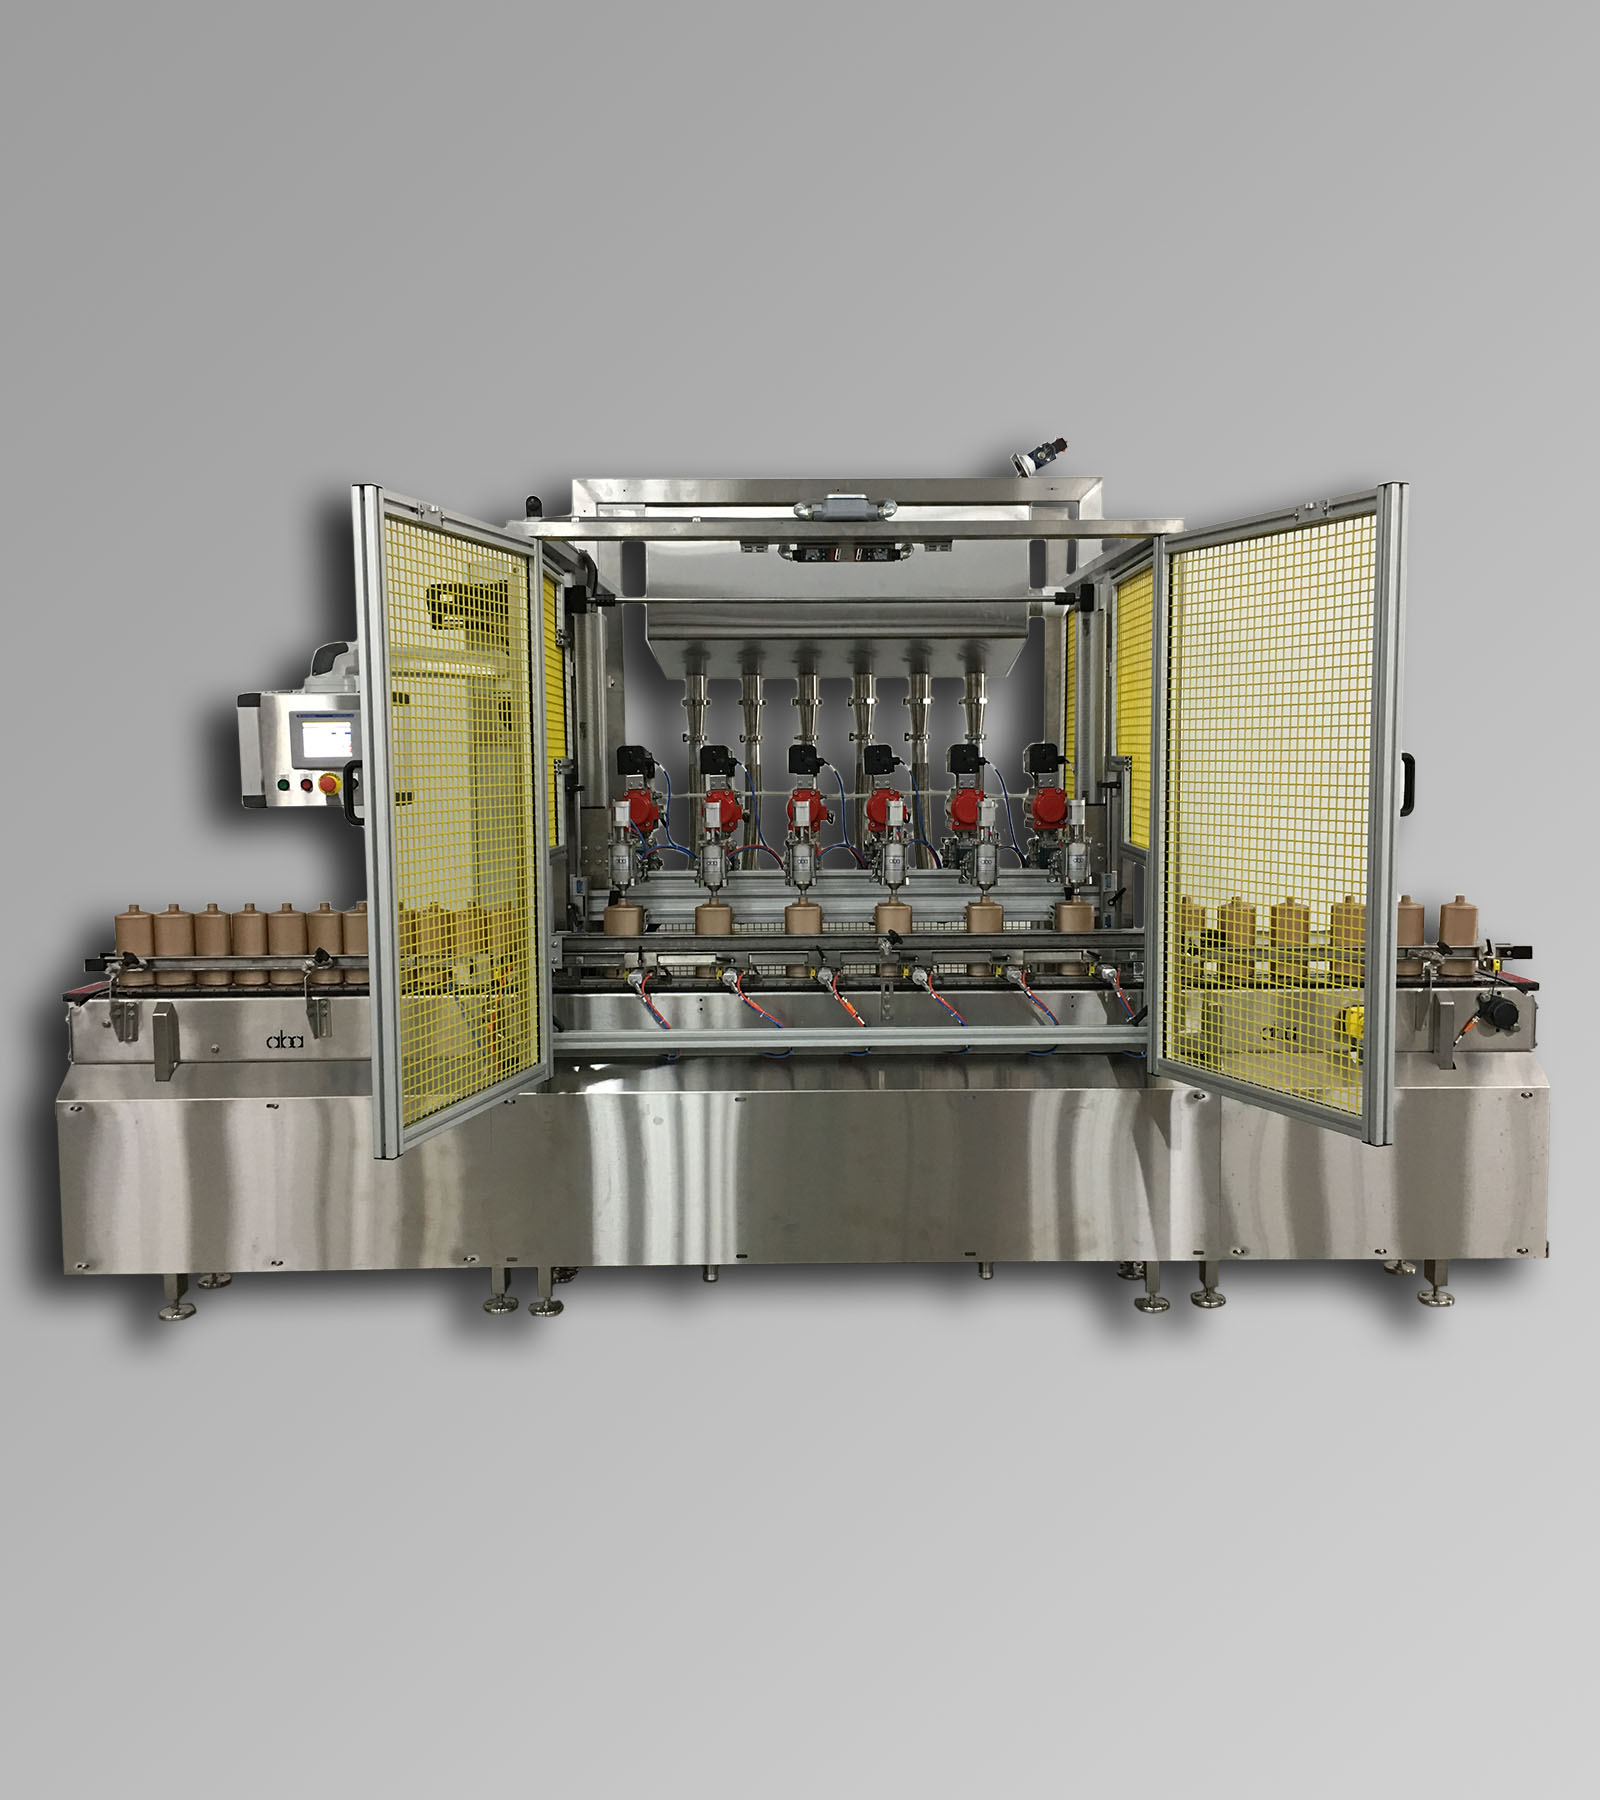 ABA-M394 - Top & Bottom Fill, Net Weight, 6 Head Filling Machine Shown Top Filling